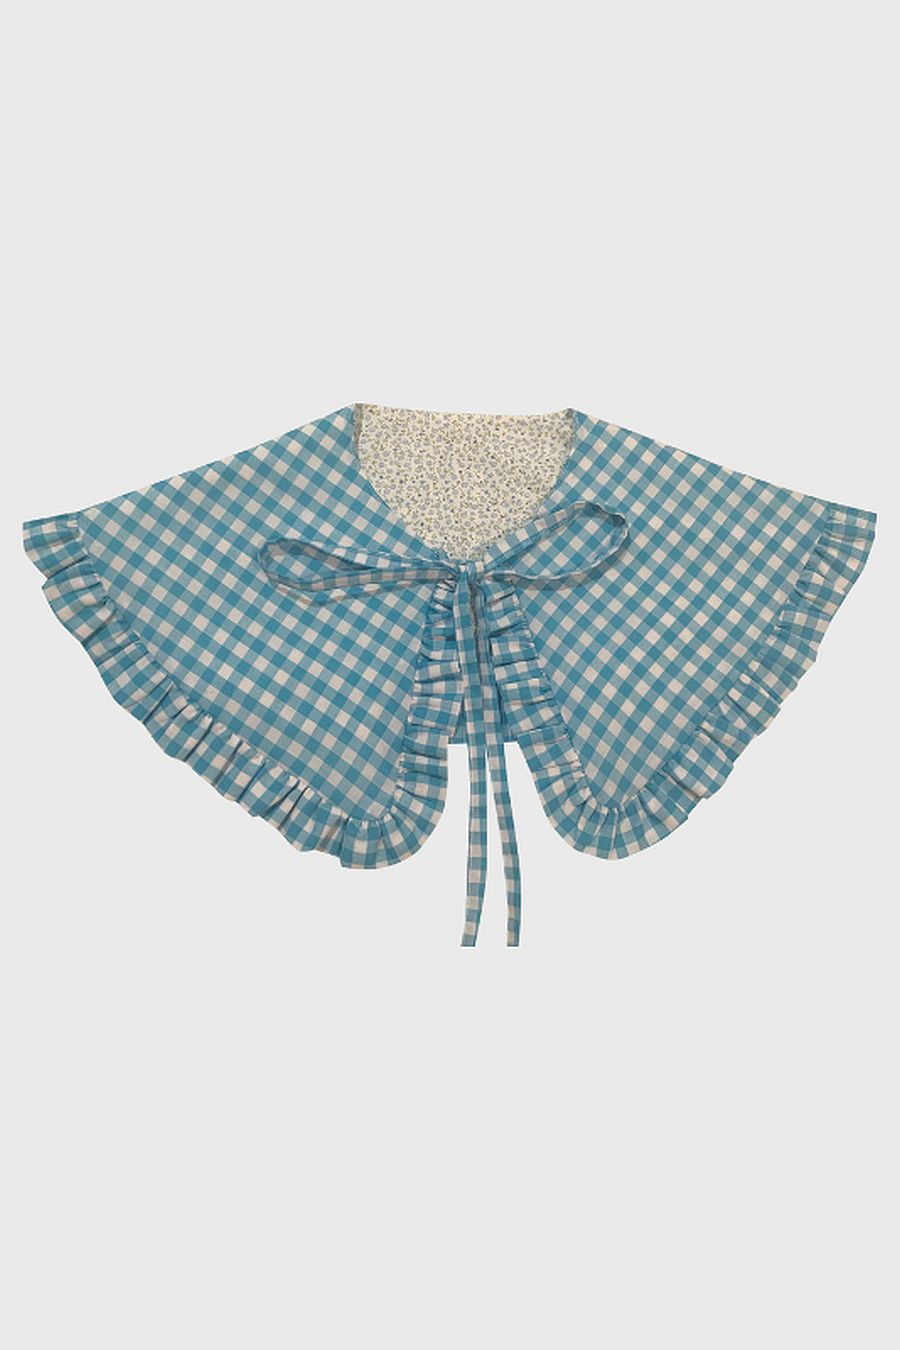 Big Baby Goes To Work Ruffle Collar - Floral/Baby Blue Gingham